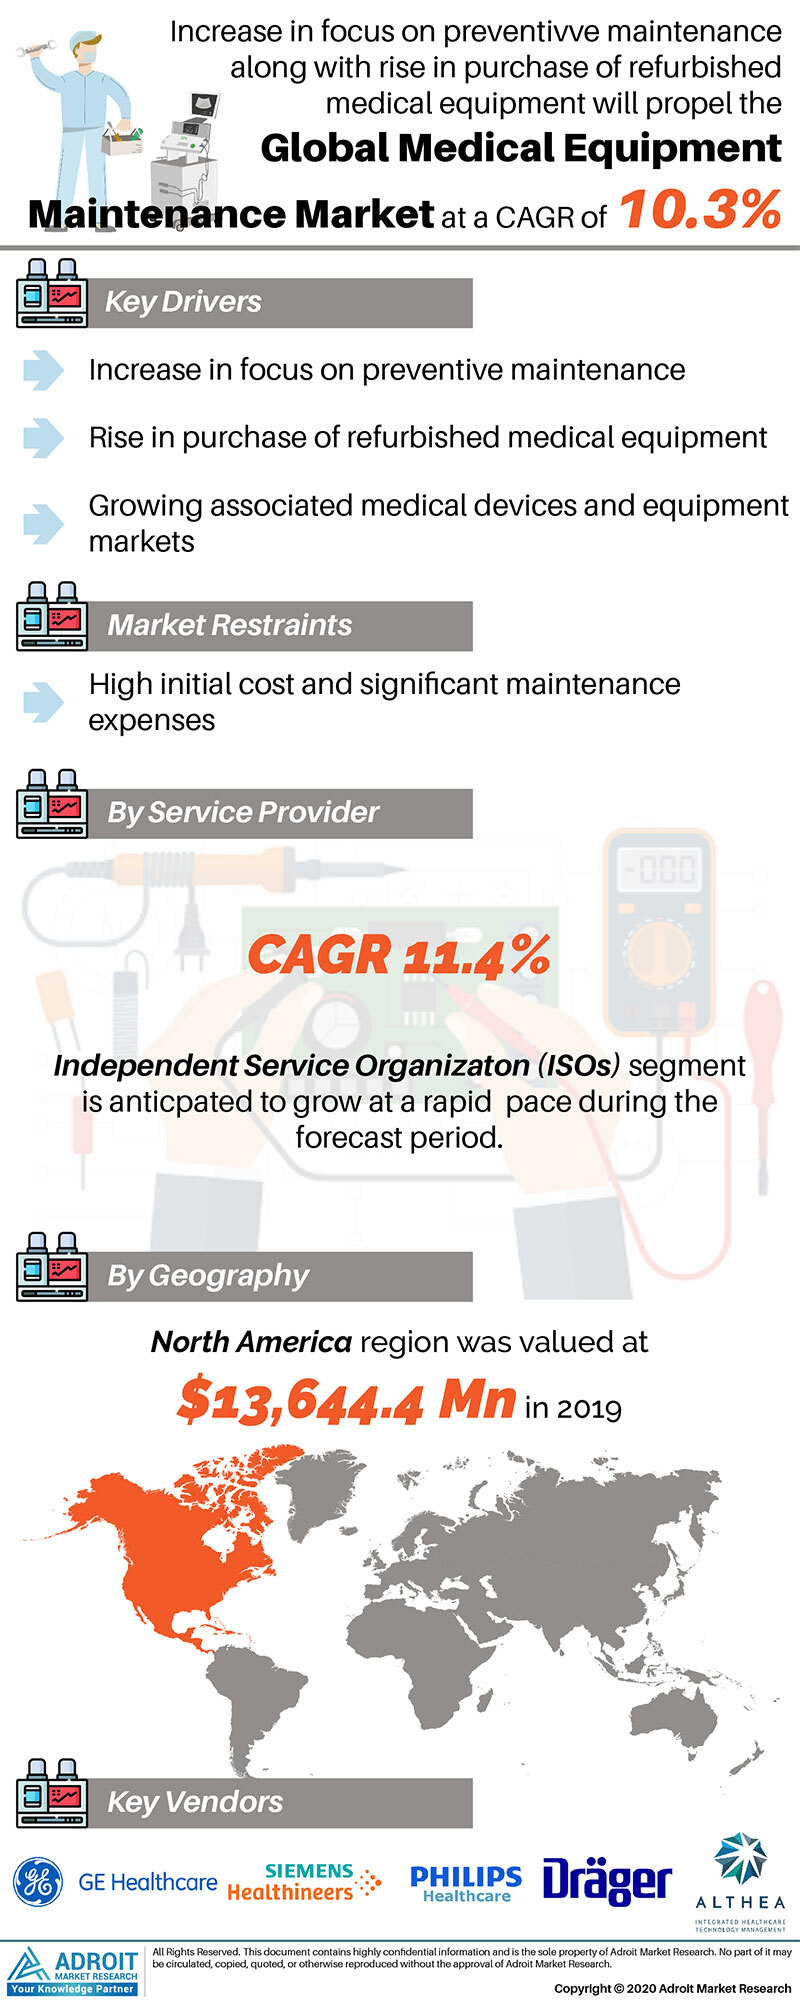 Medical Equipment Maintenance Market Size 2017 By Application, Product, Region and Forecast 2019 to 2025